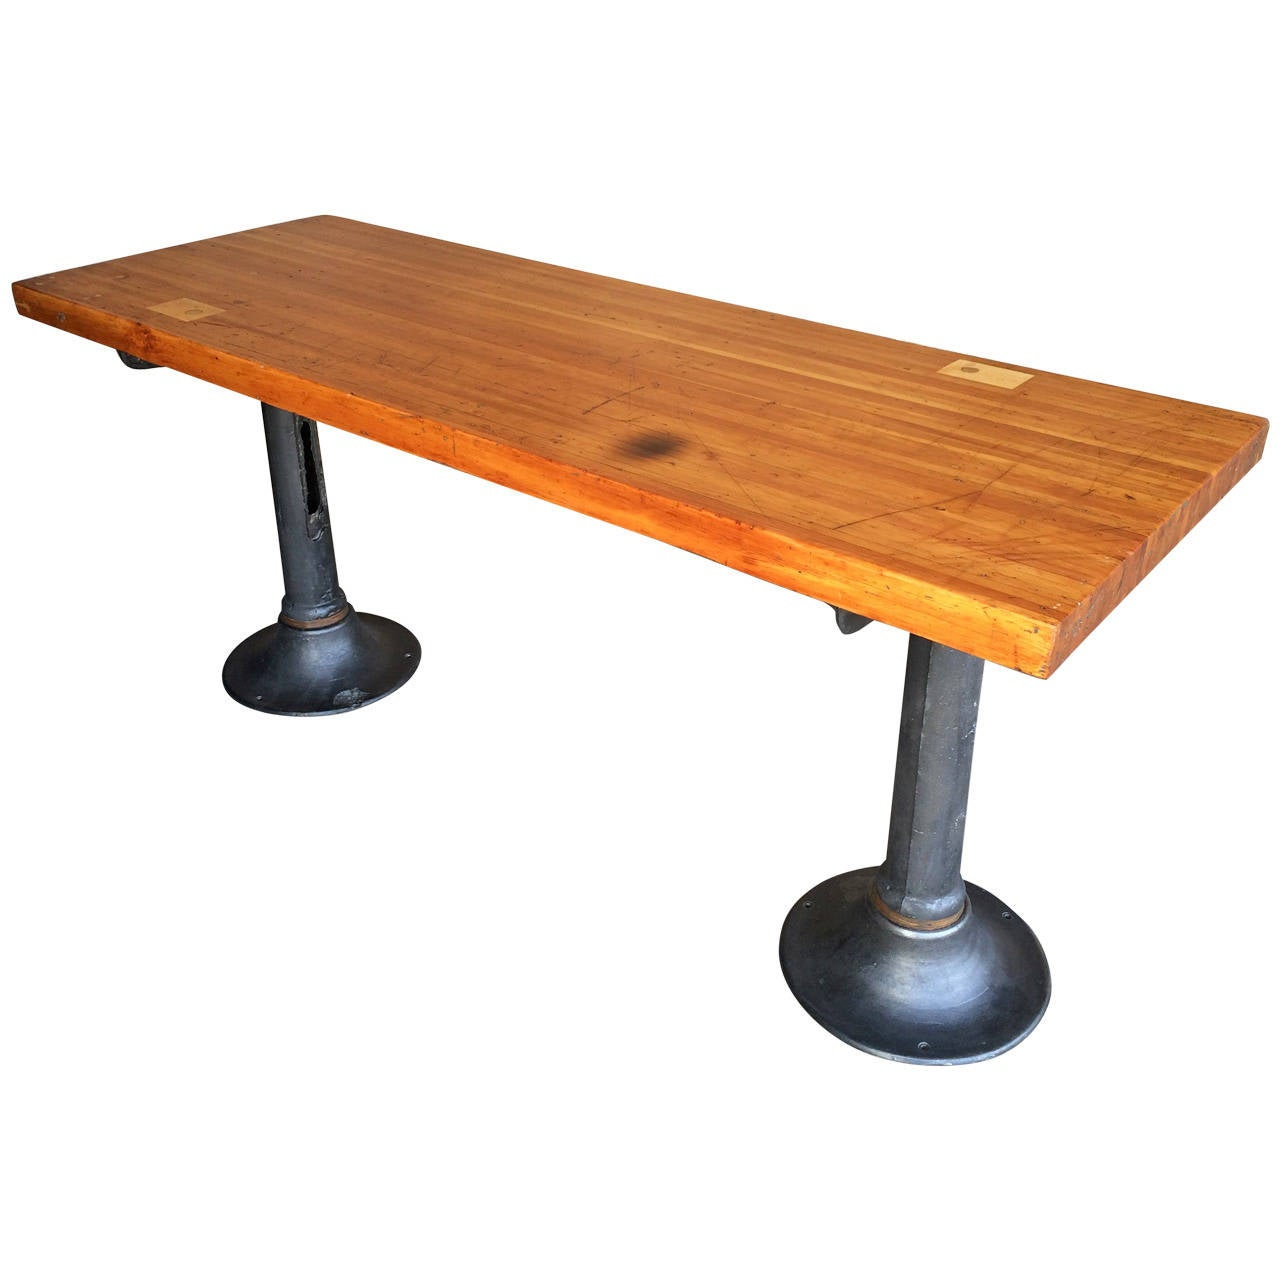 Home > Furniture > Tables > Industrial and Work Tables